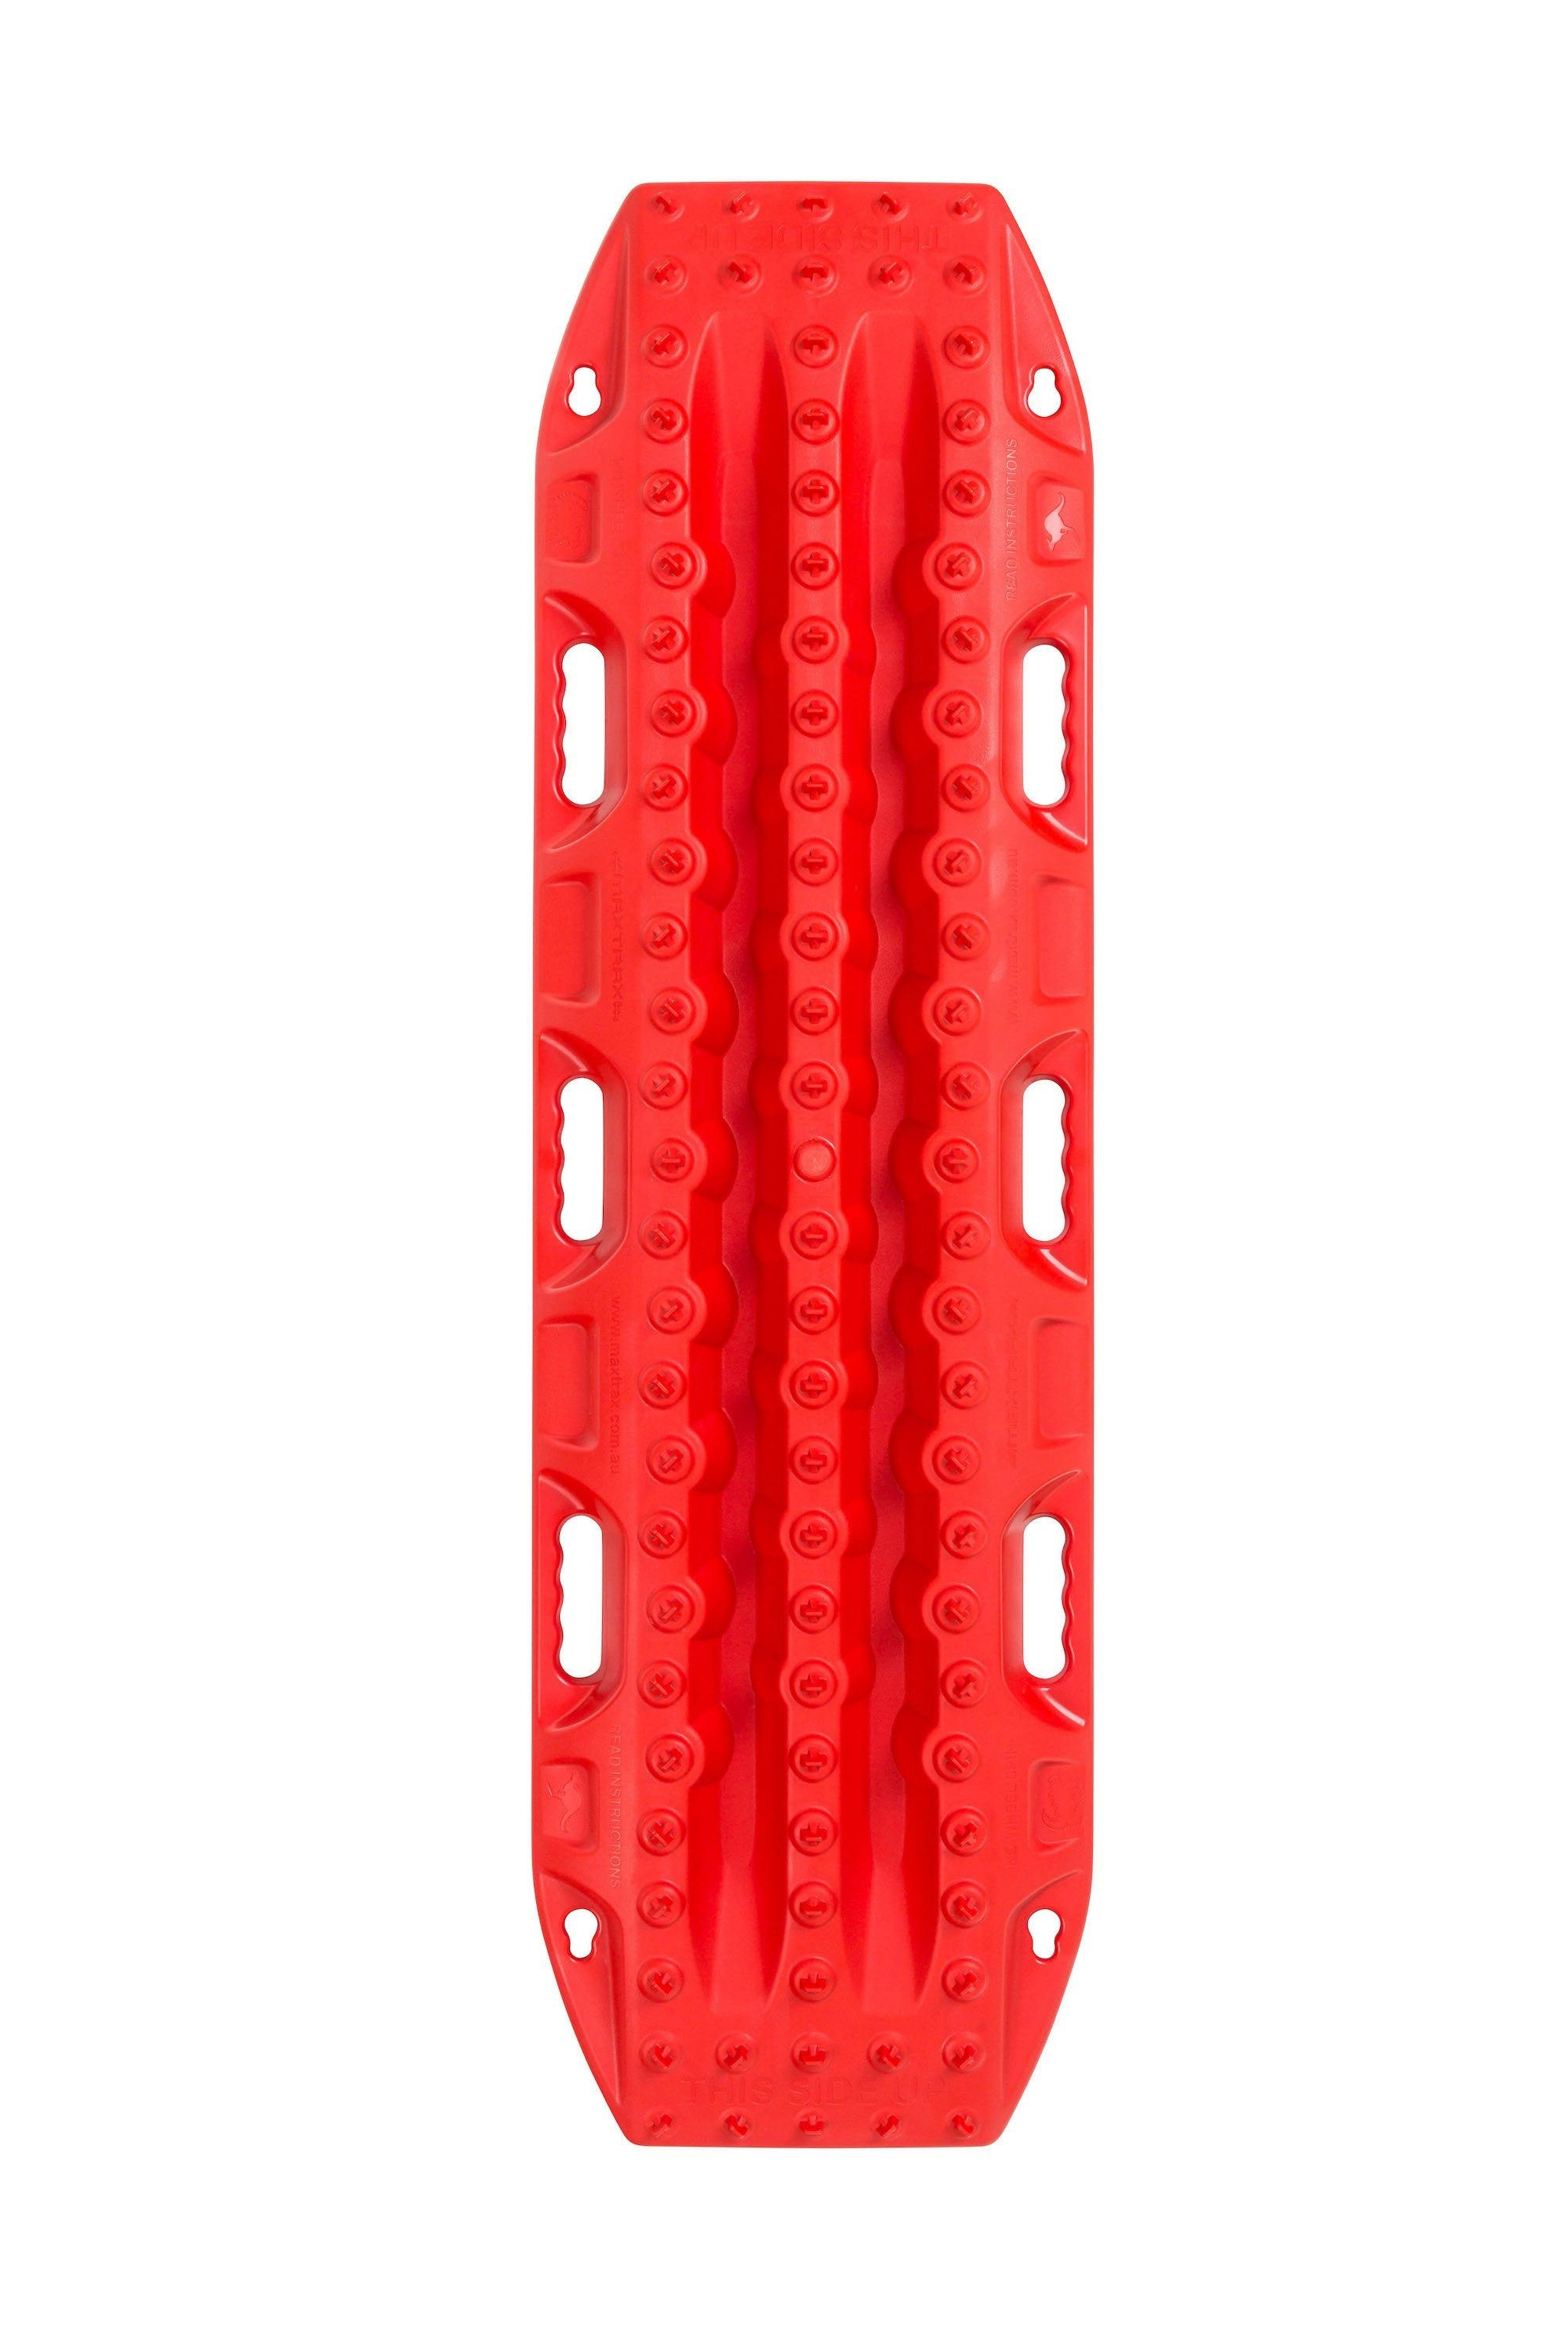 MAXTRAX MKII FJ Red Recovery Boards  Recovery Gear MAXTRAX- Adventure Imports